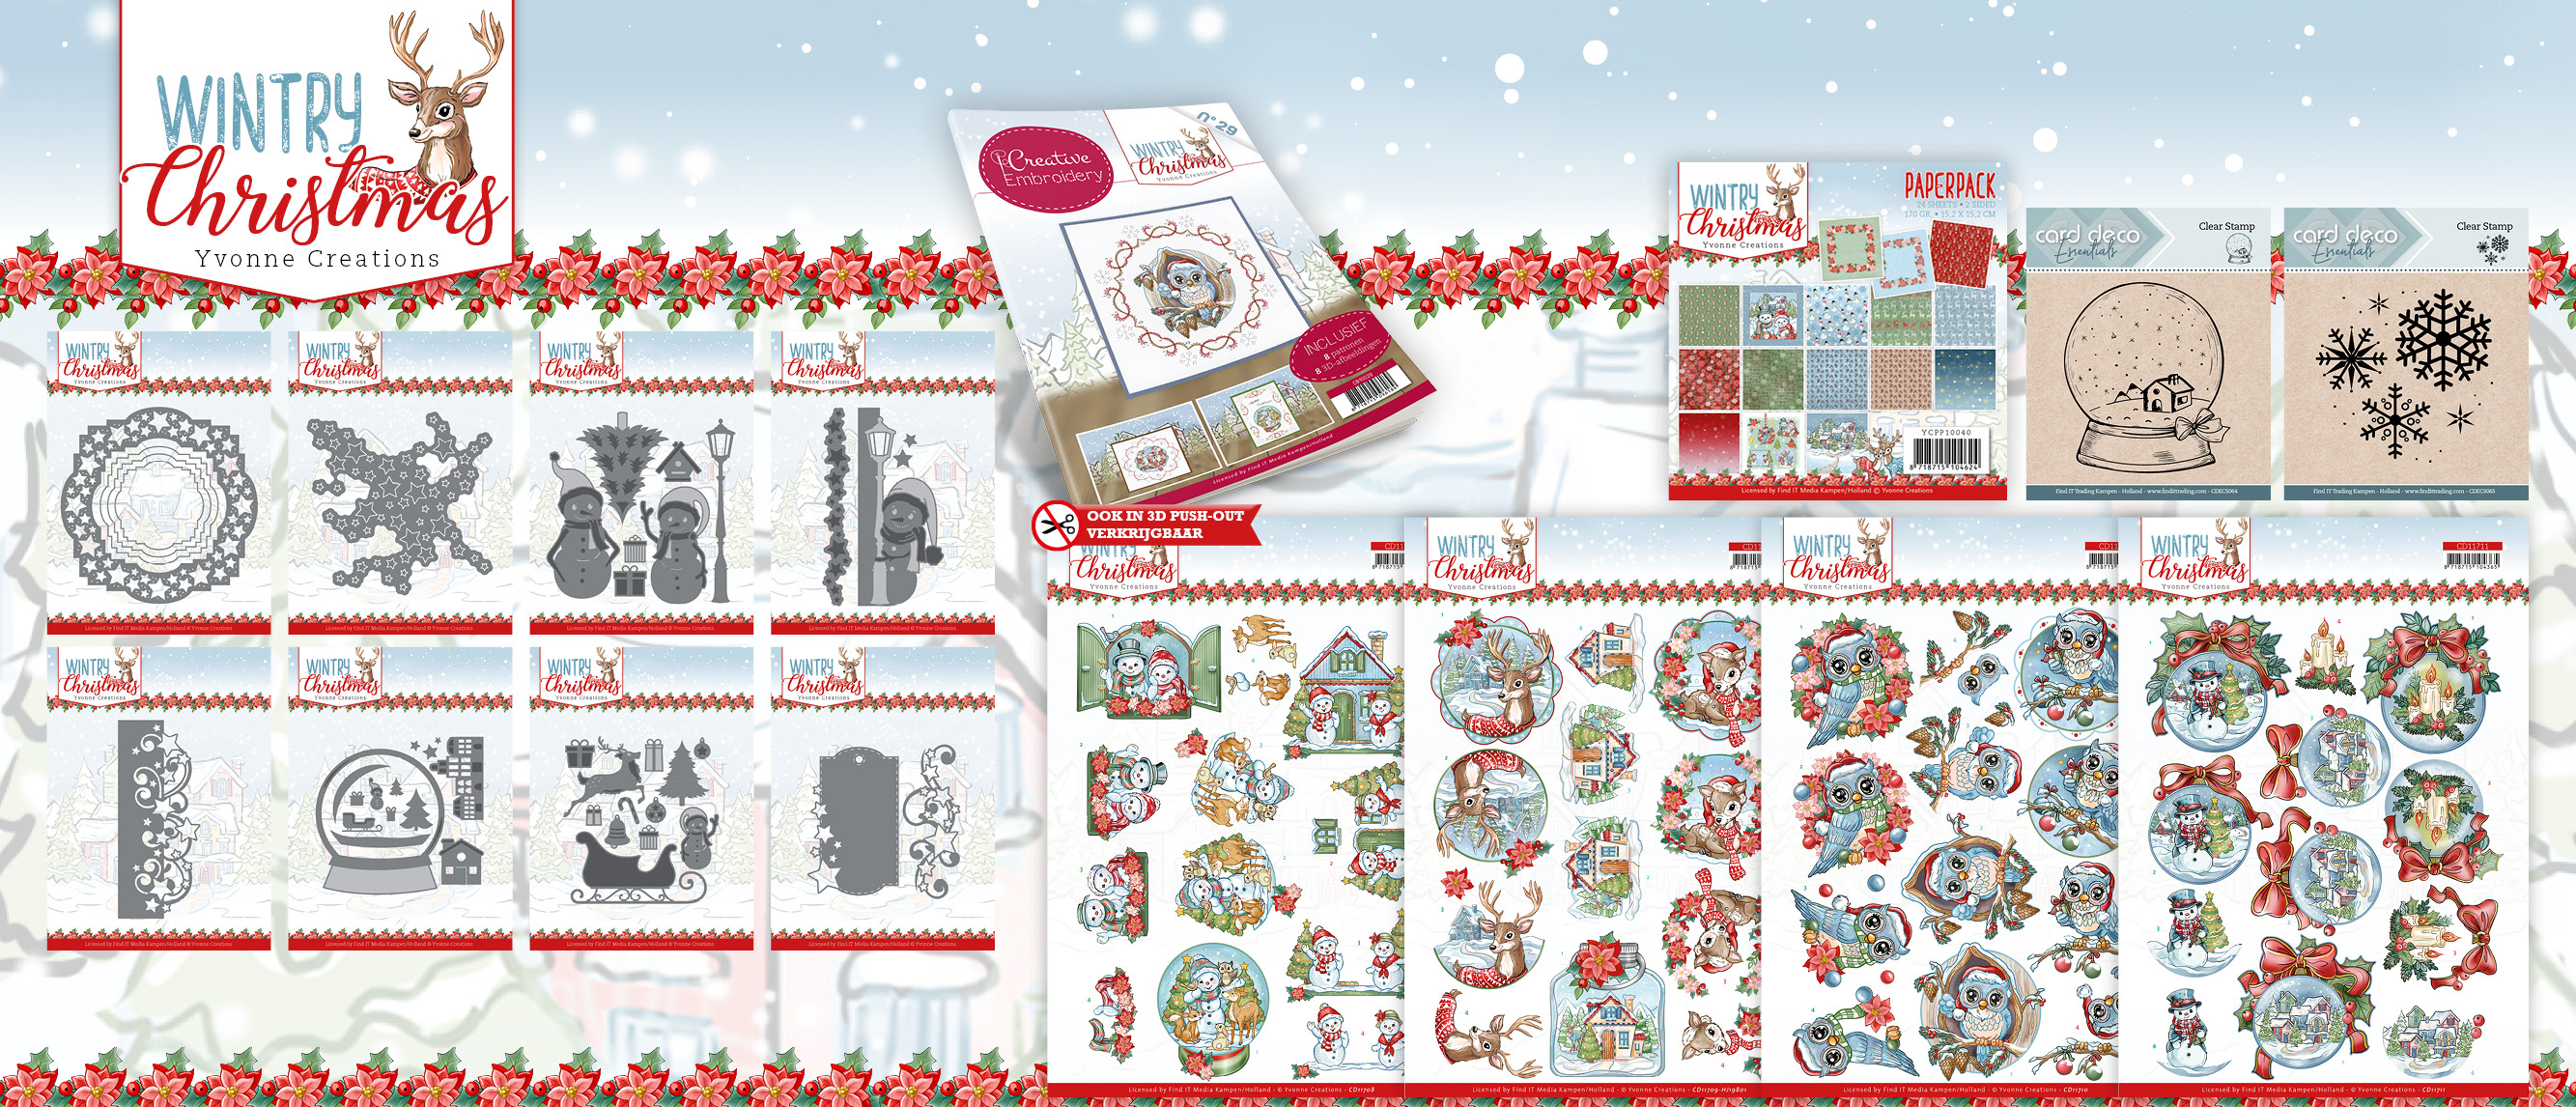 Collectie Wintry Christmas- Yvonne Creations